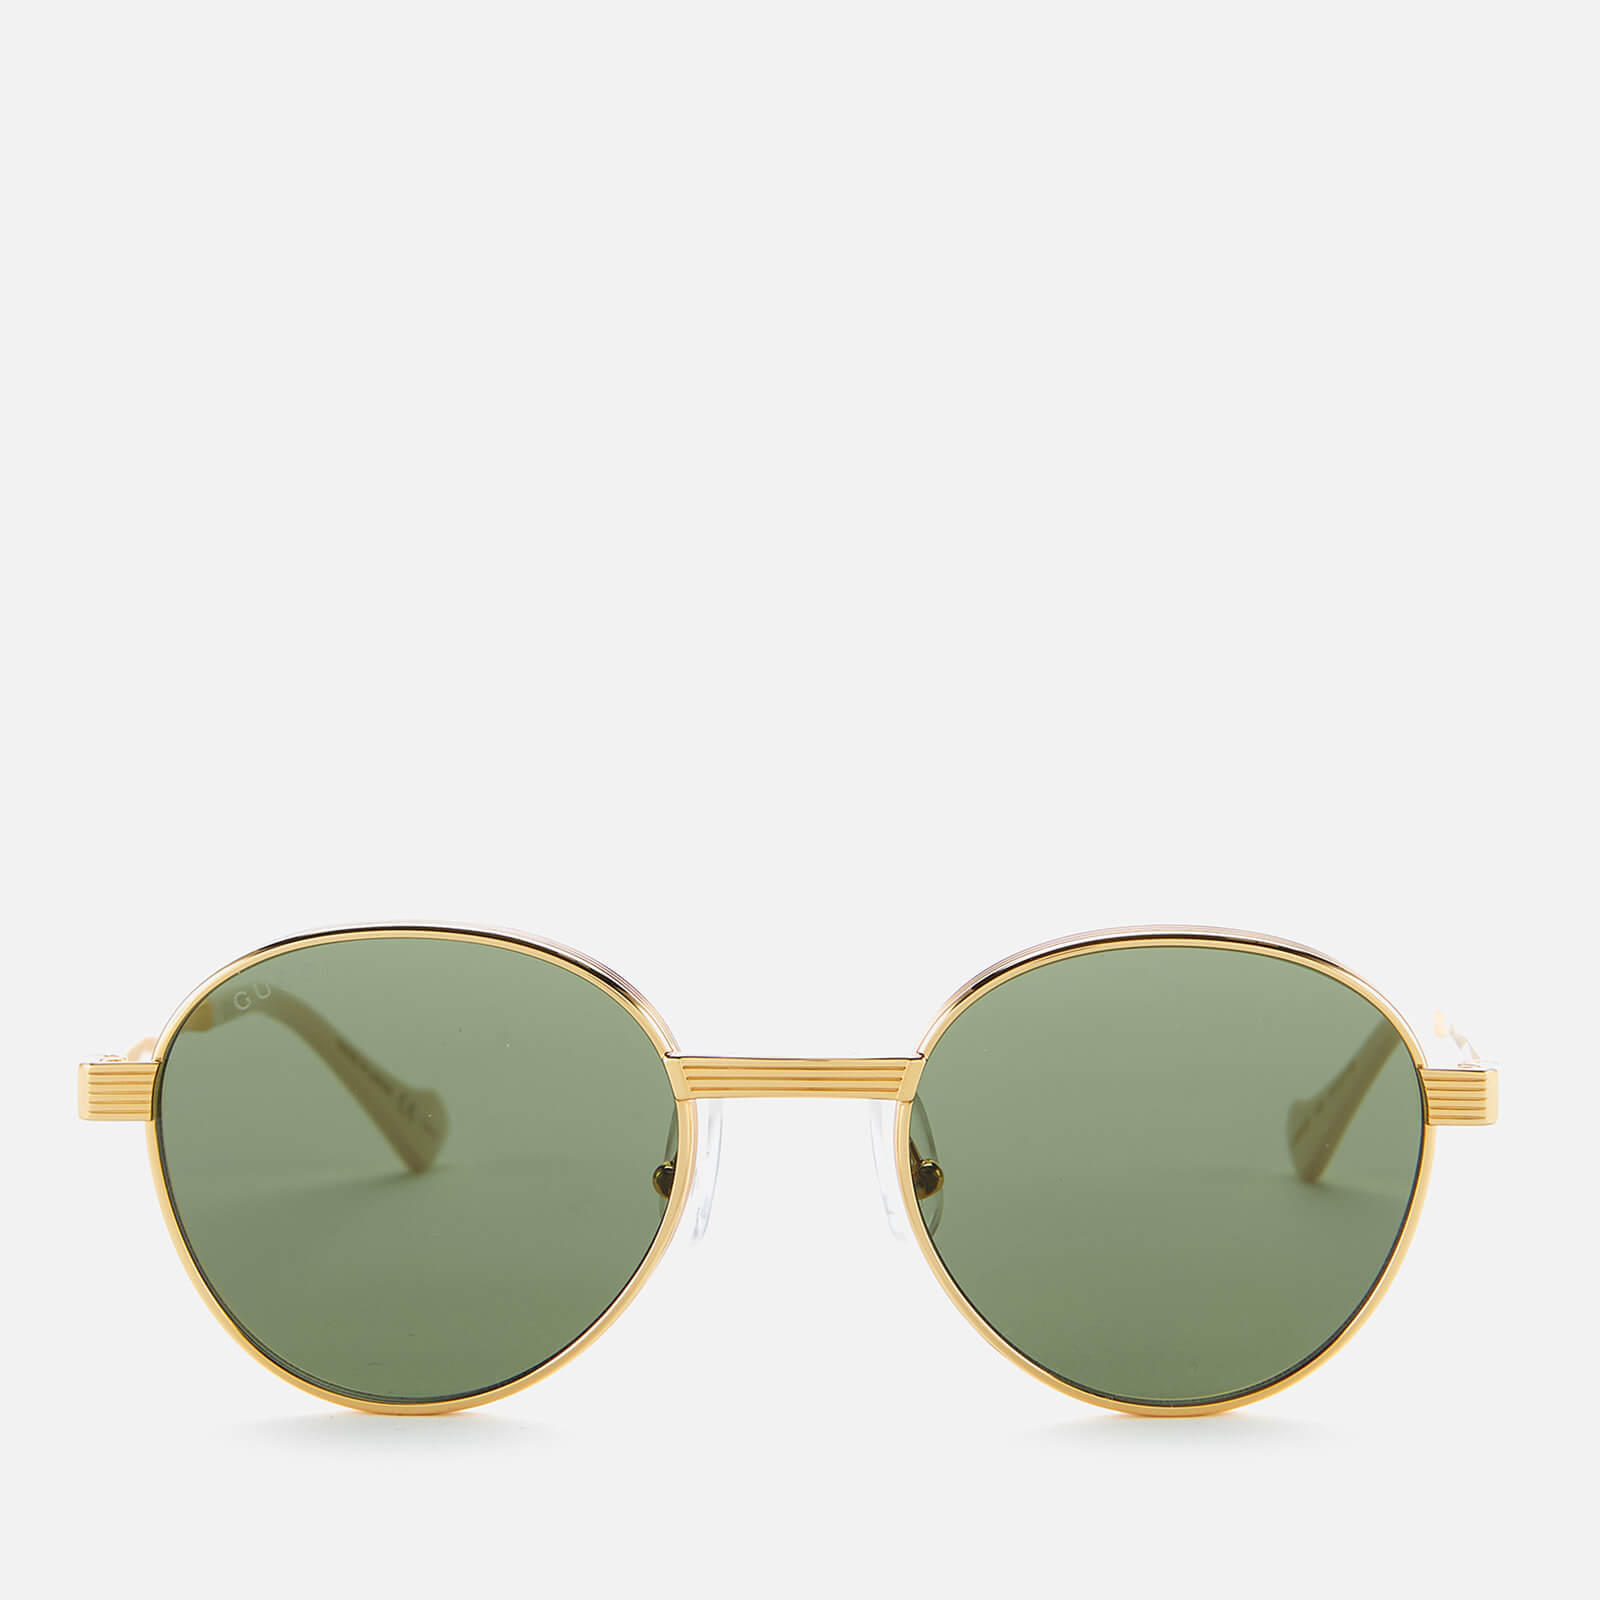 Gucci Men's Rounded Metal Sunglasses - Gold/Green